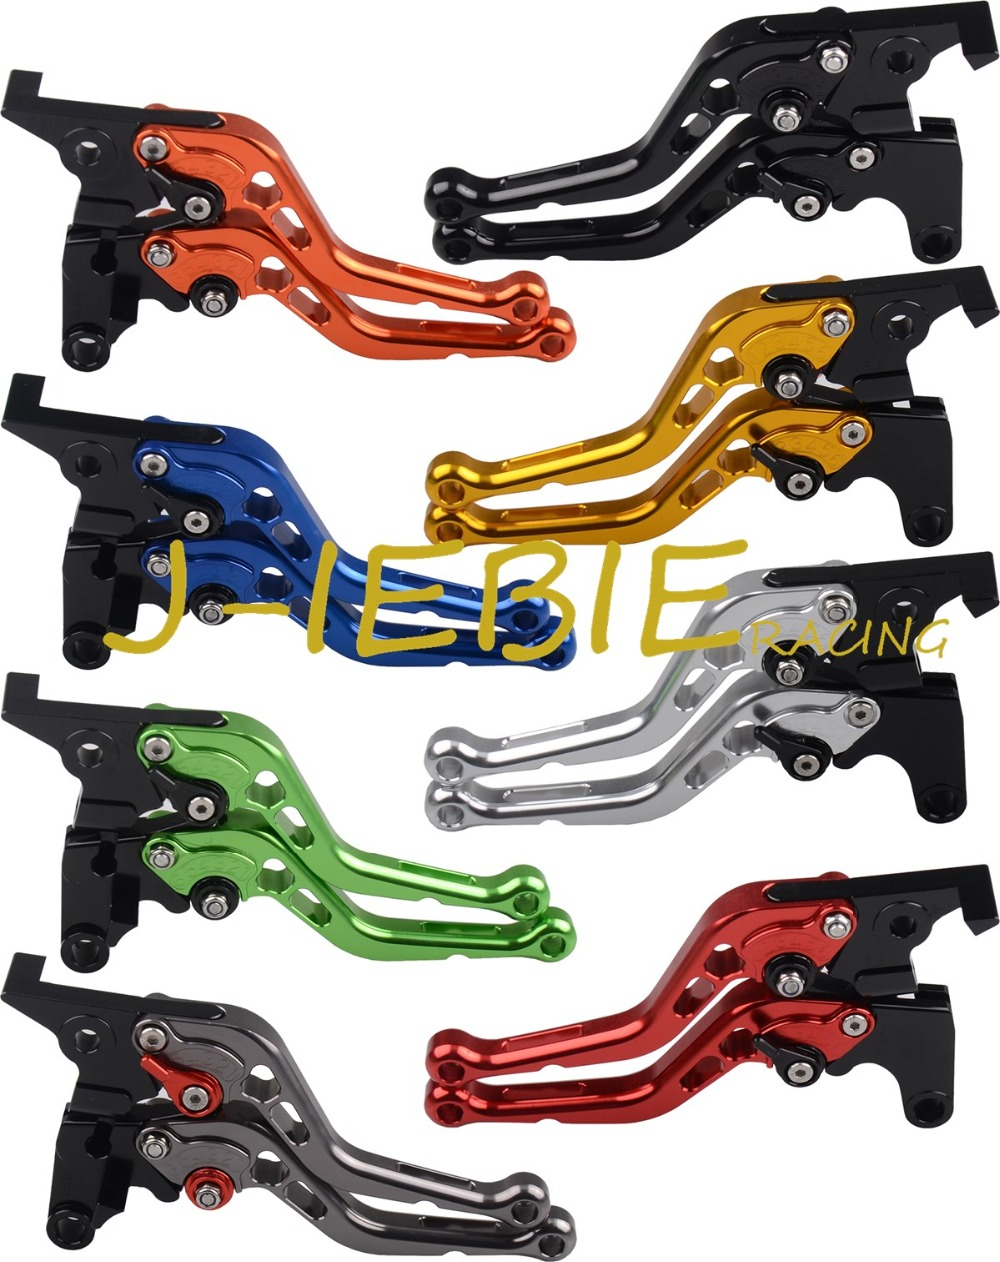 For KTM 1190 Adventure/R 2013-2016 Super Adventure 1290 S/T/R 2015-2017 157 New CNC Adjuster Brake Clutch Levers